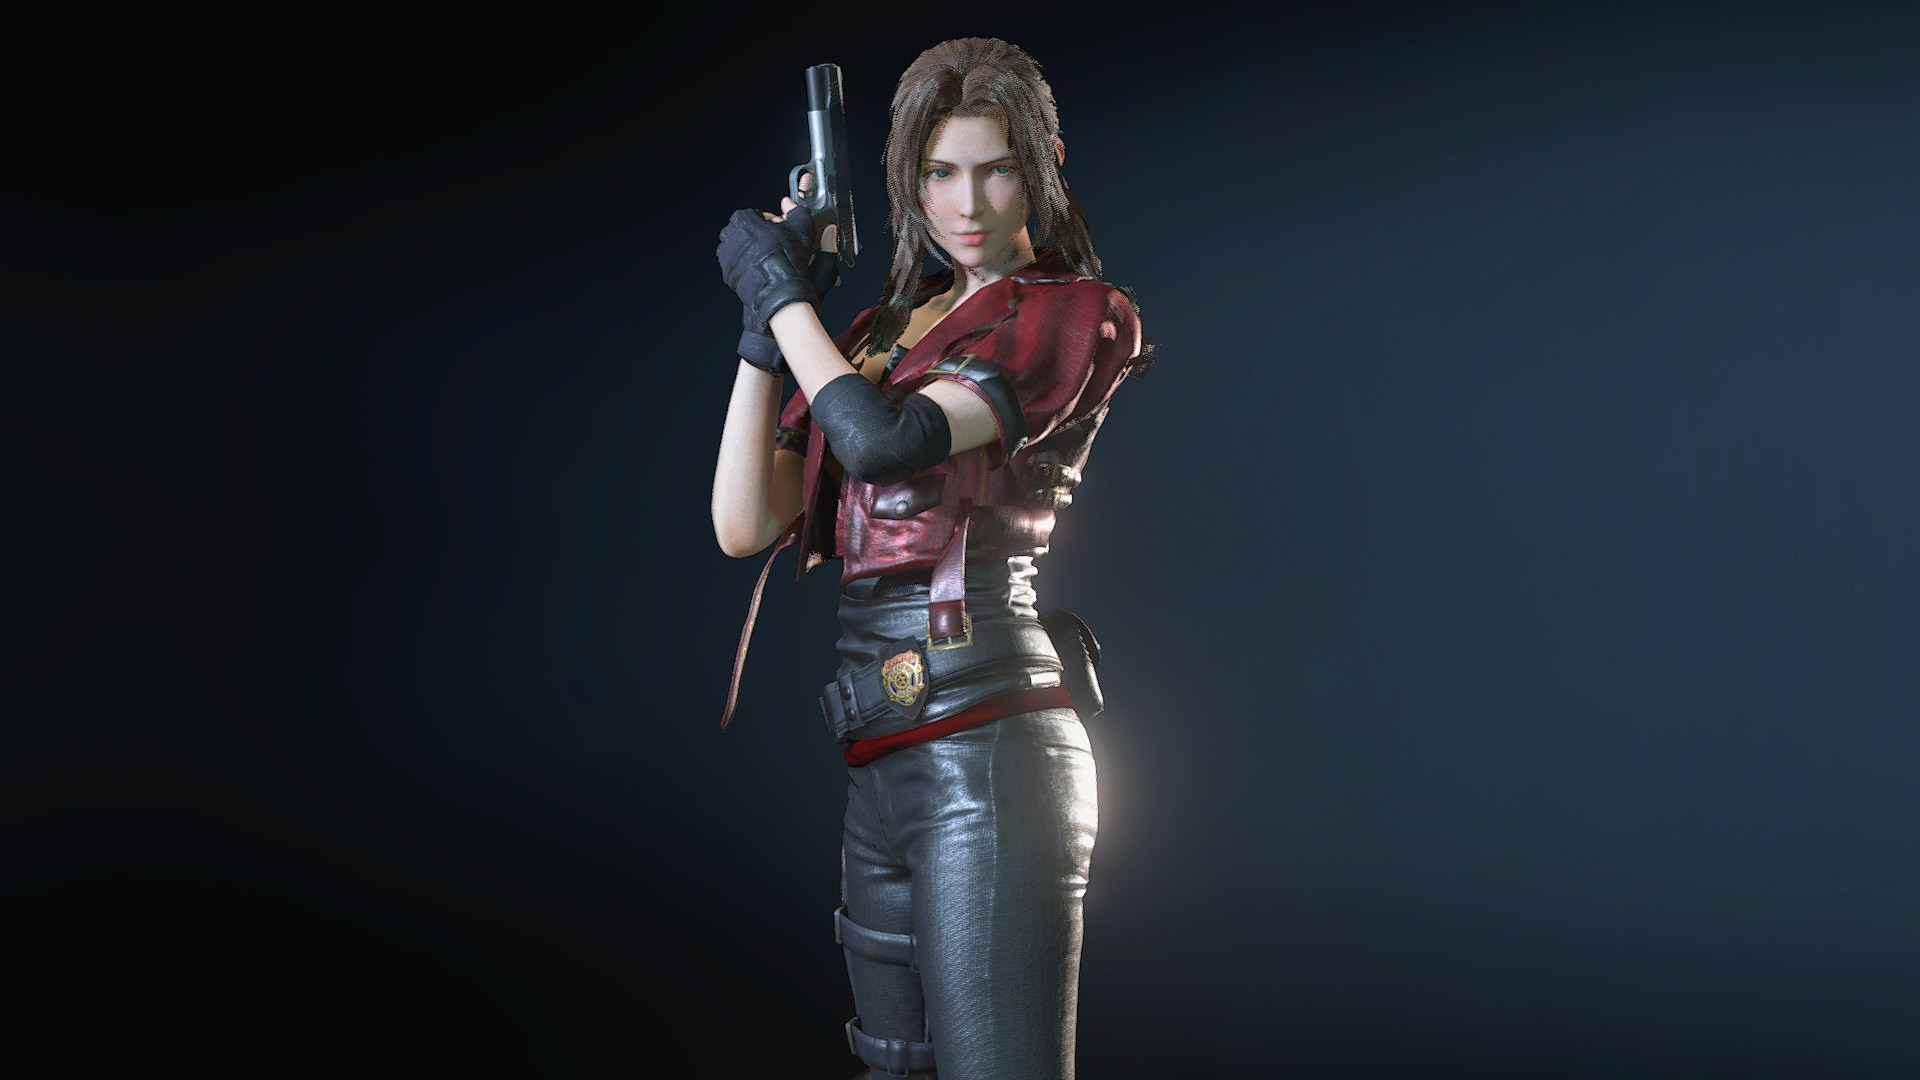 This Resident Evil 3 Mod Lets You Play As A Badass Aerith From